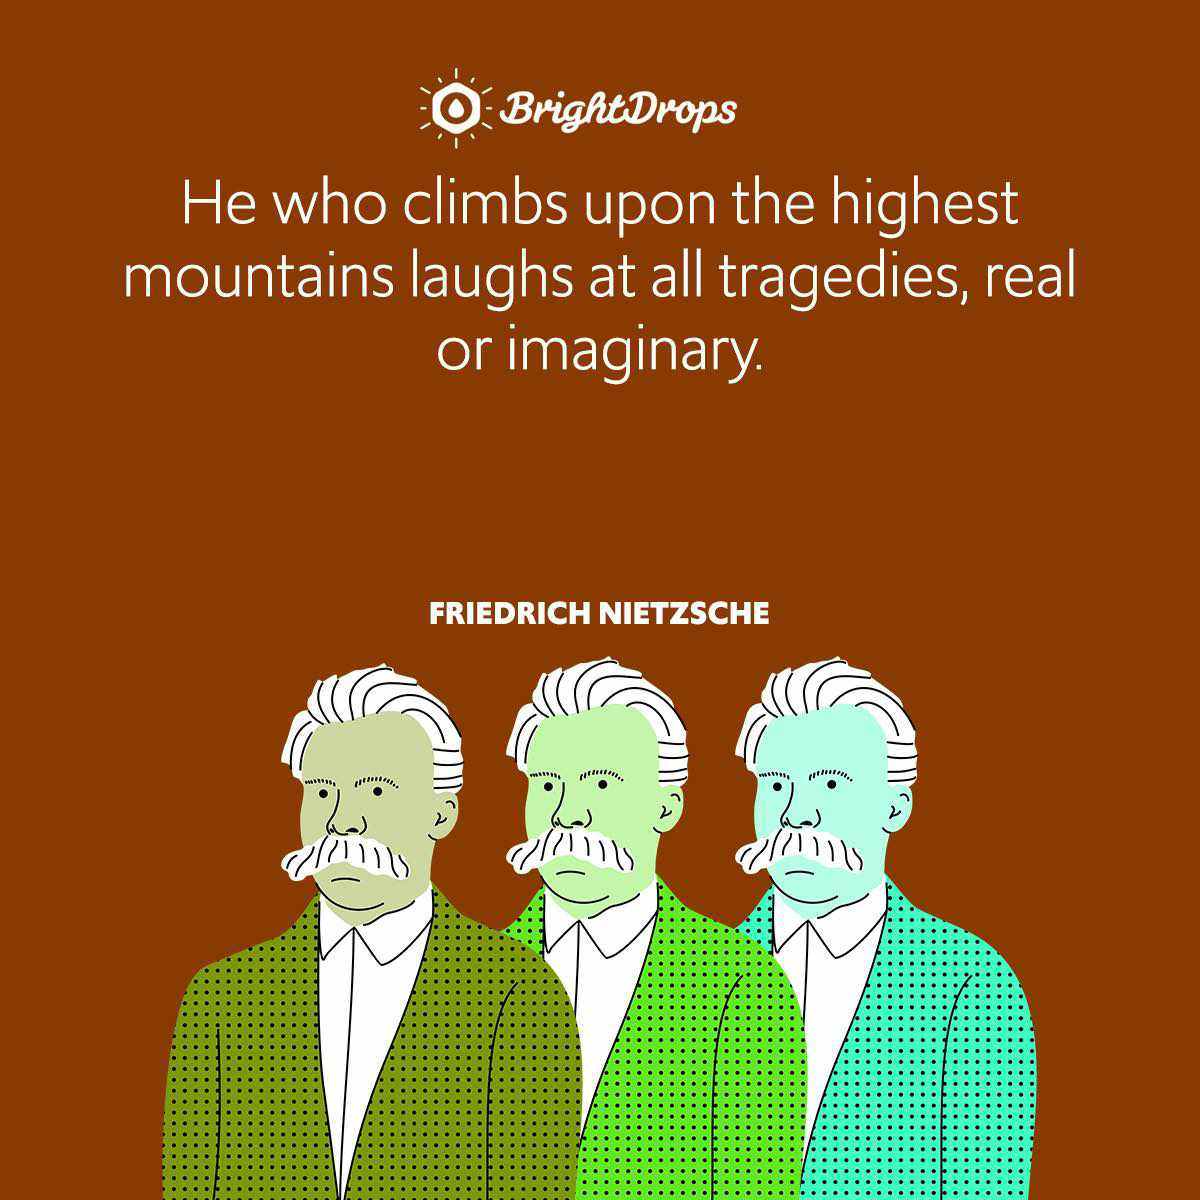 He who climbs upon the highest mountains laughs at all tragedies, real or imaginary.